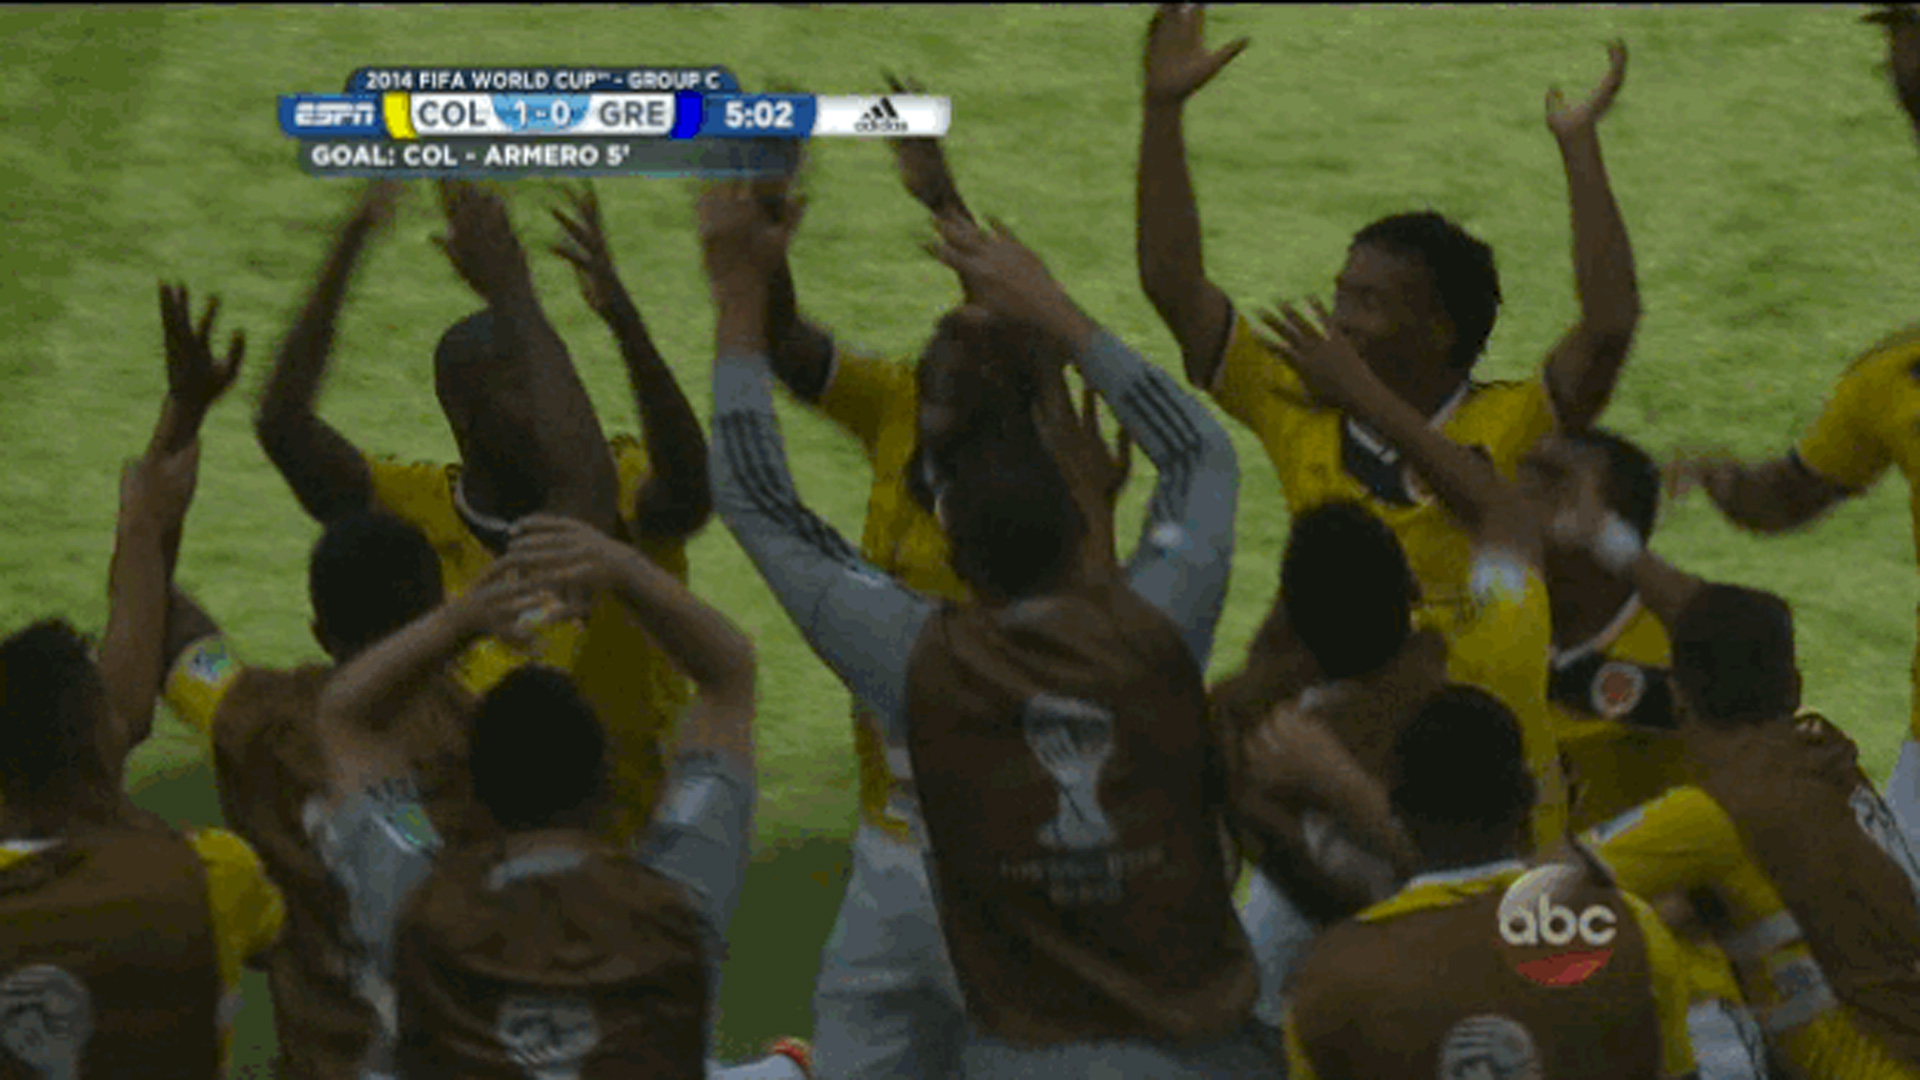 world-cup-colombia-061414-mocksession-ftr